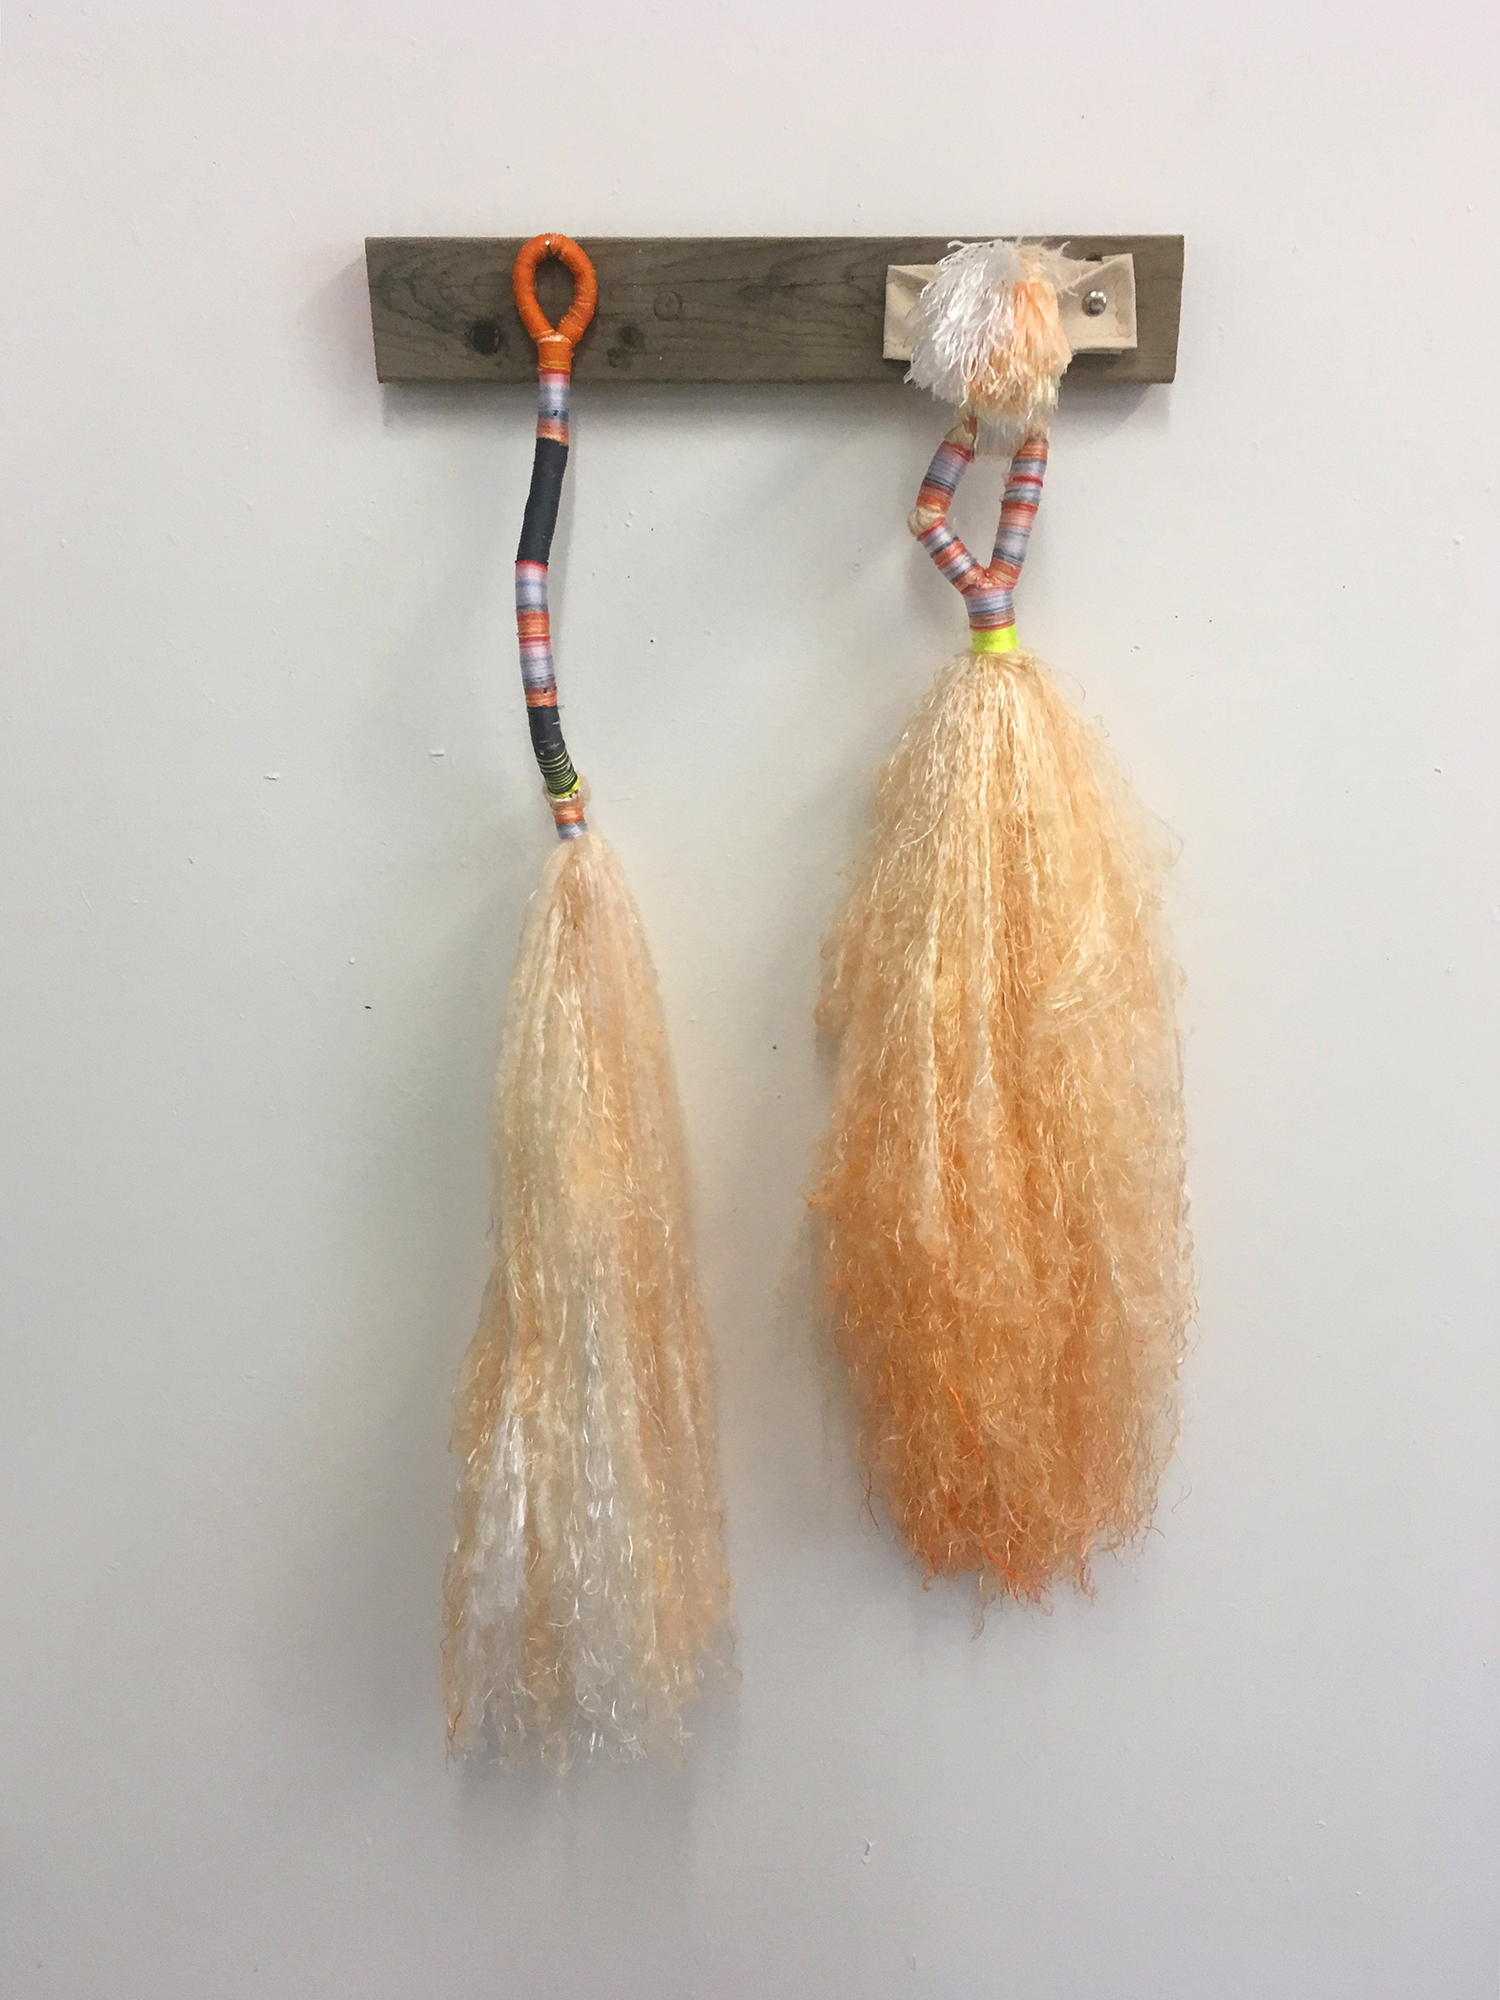 Daniel Zeese,  Two Orange Brooms,  bound dyed nylon and canvas fixture, 36x24x6